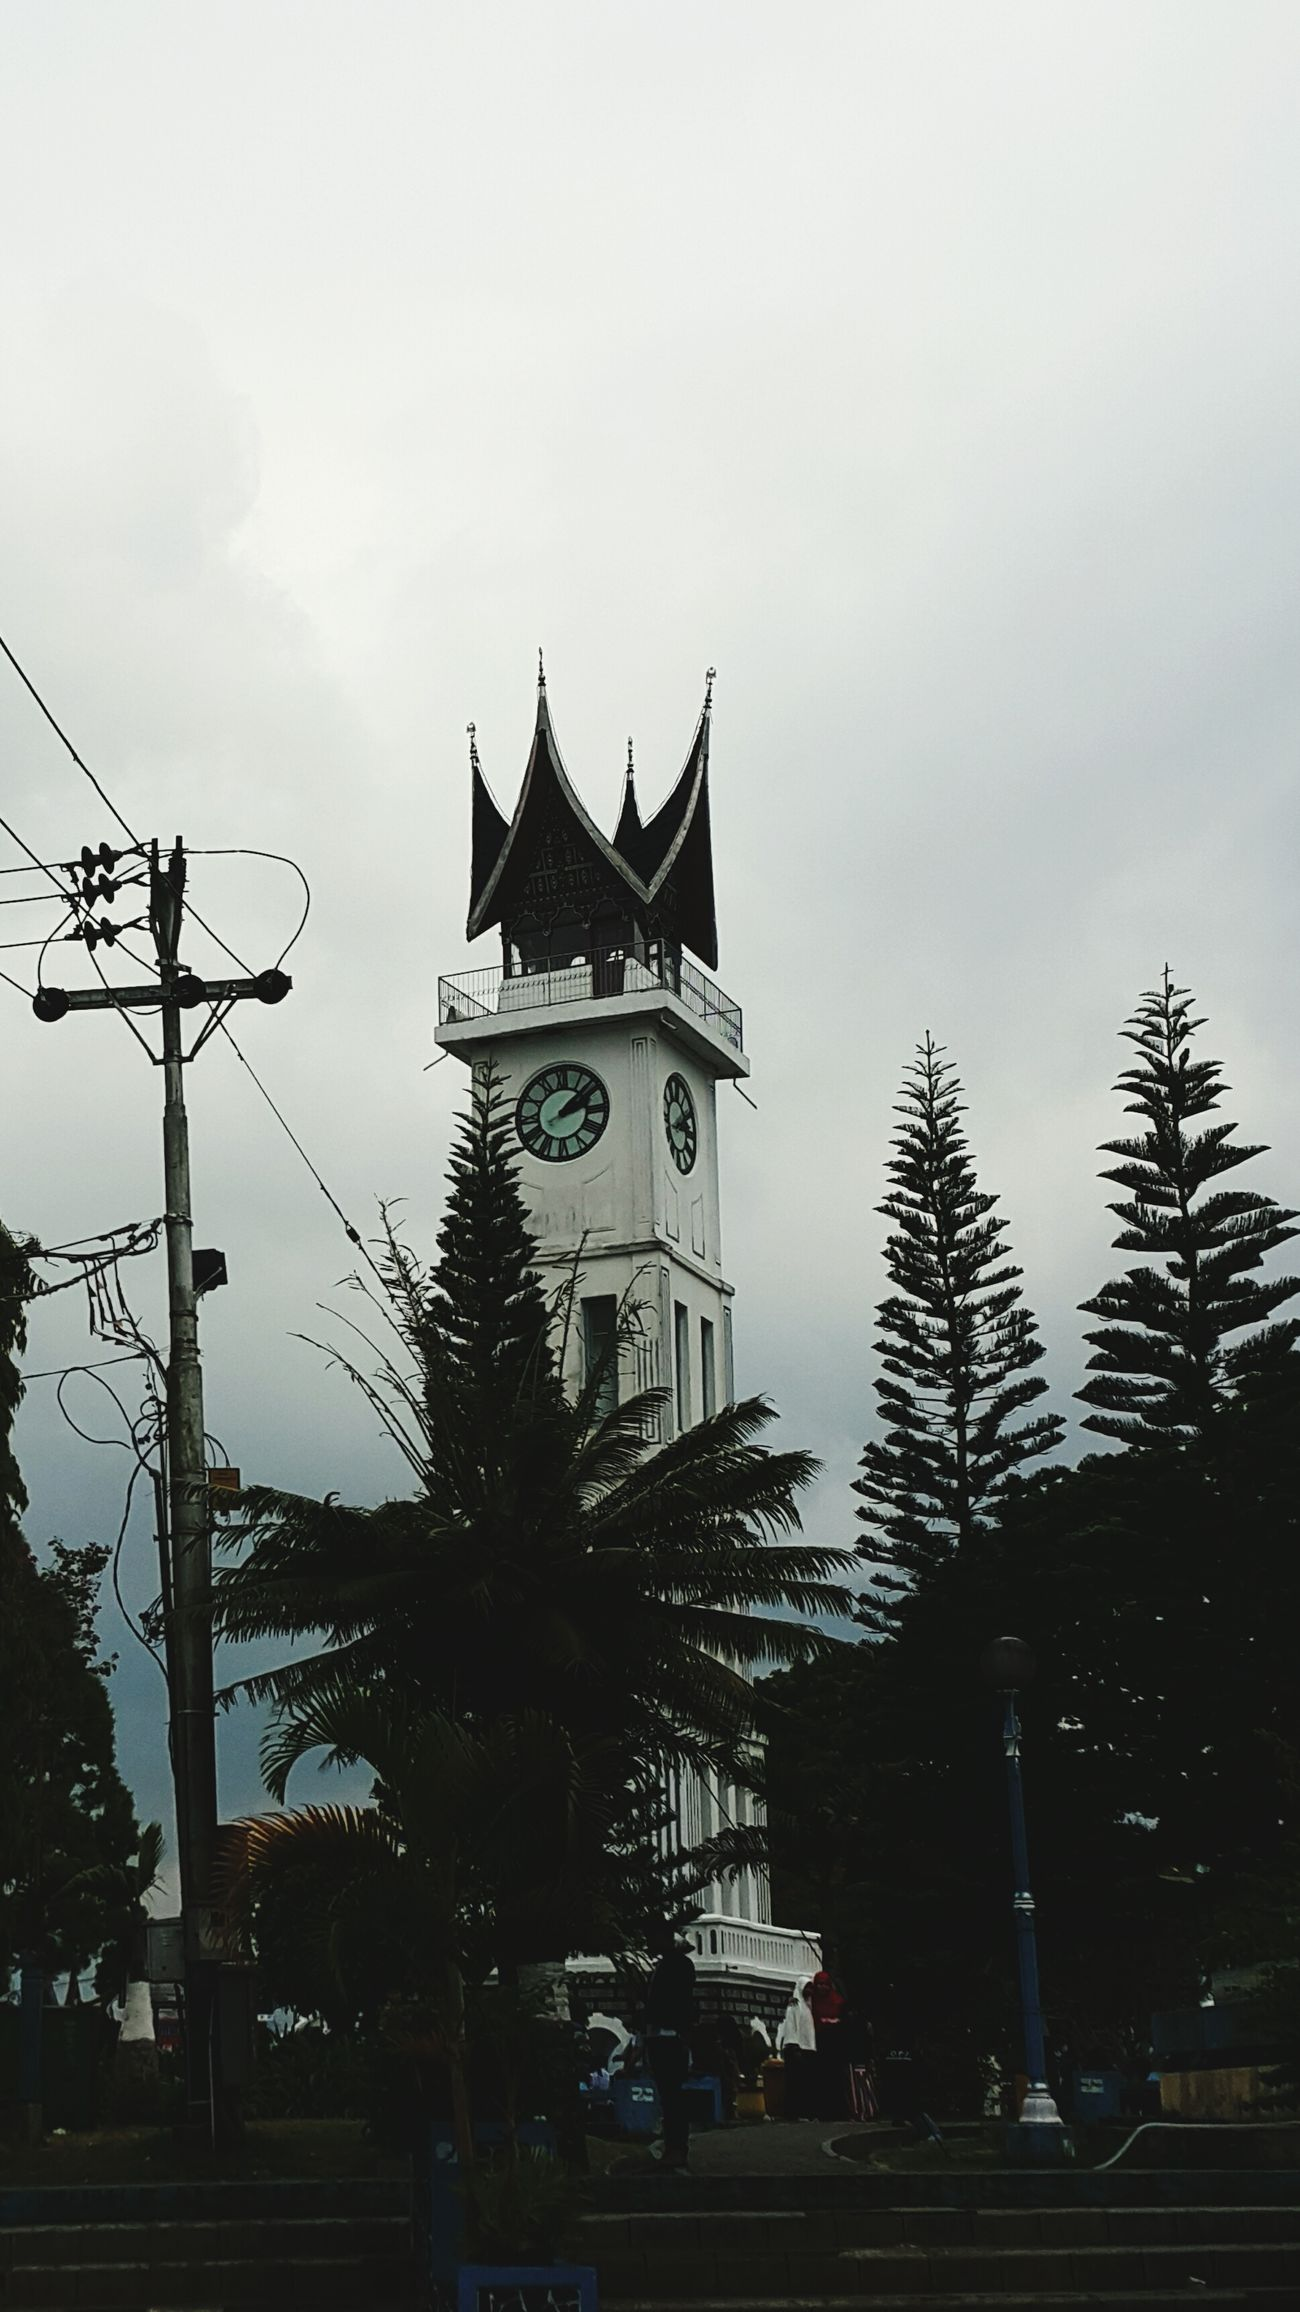 Not only in England, in Indonesia we called Jam Gadang, the big bang of Indonesia at Bukit Tinggi, West Sumatera Jamgadang SumateraBarat Bukittinggi Sejarahindonesia